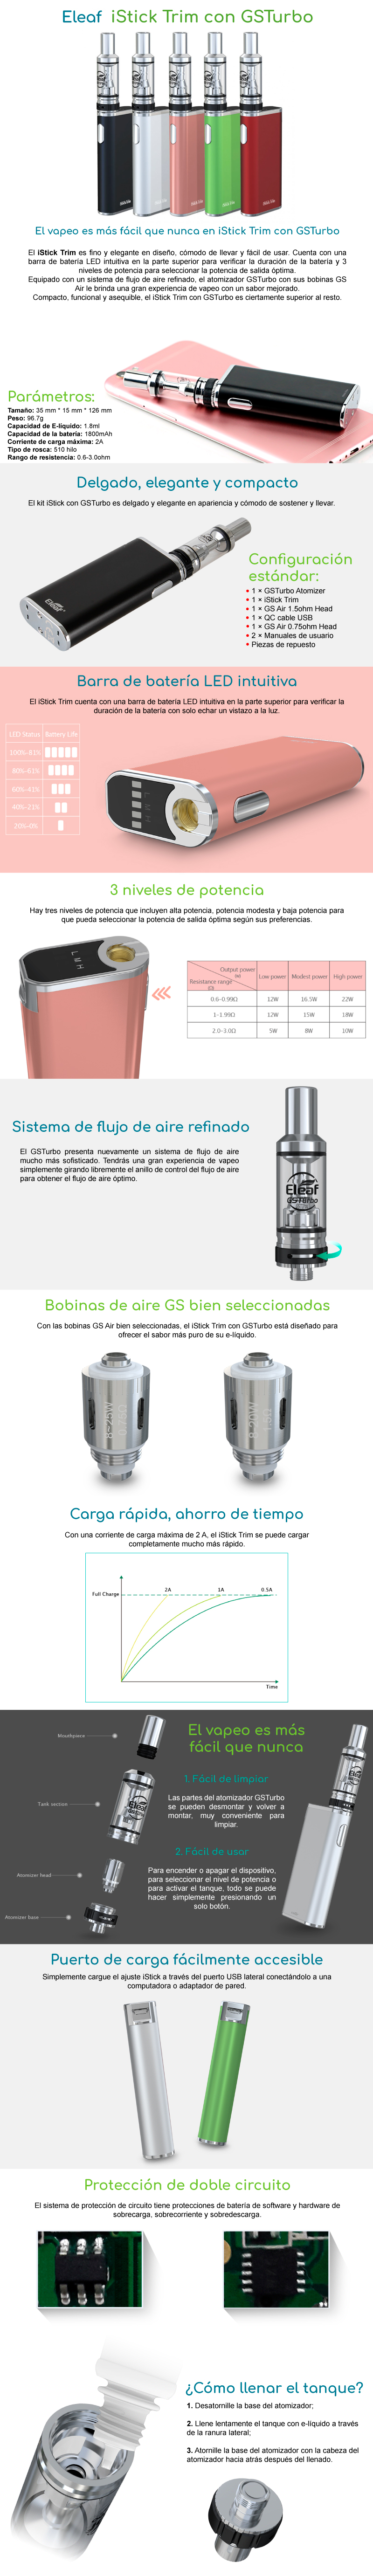 Kit Eleaf Trim con Atomizador GSTurbo